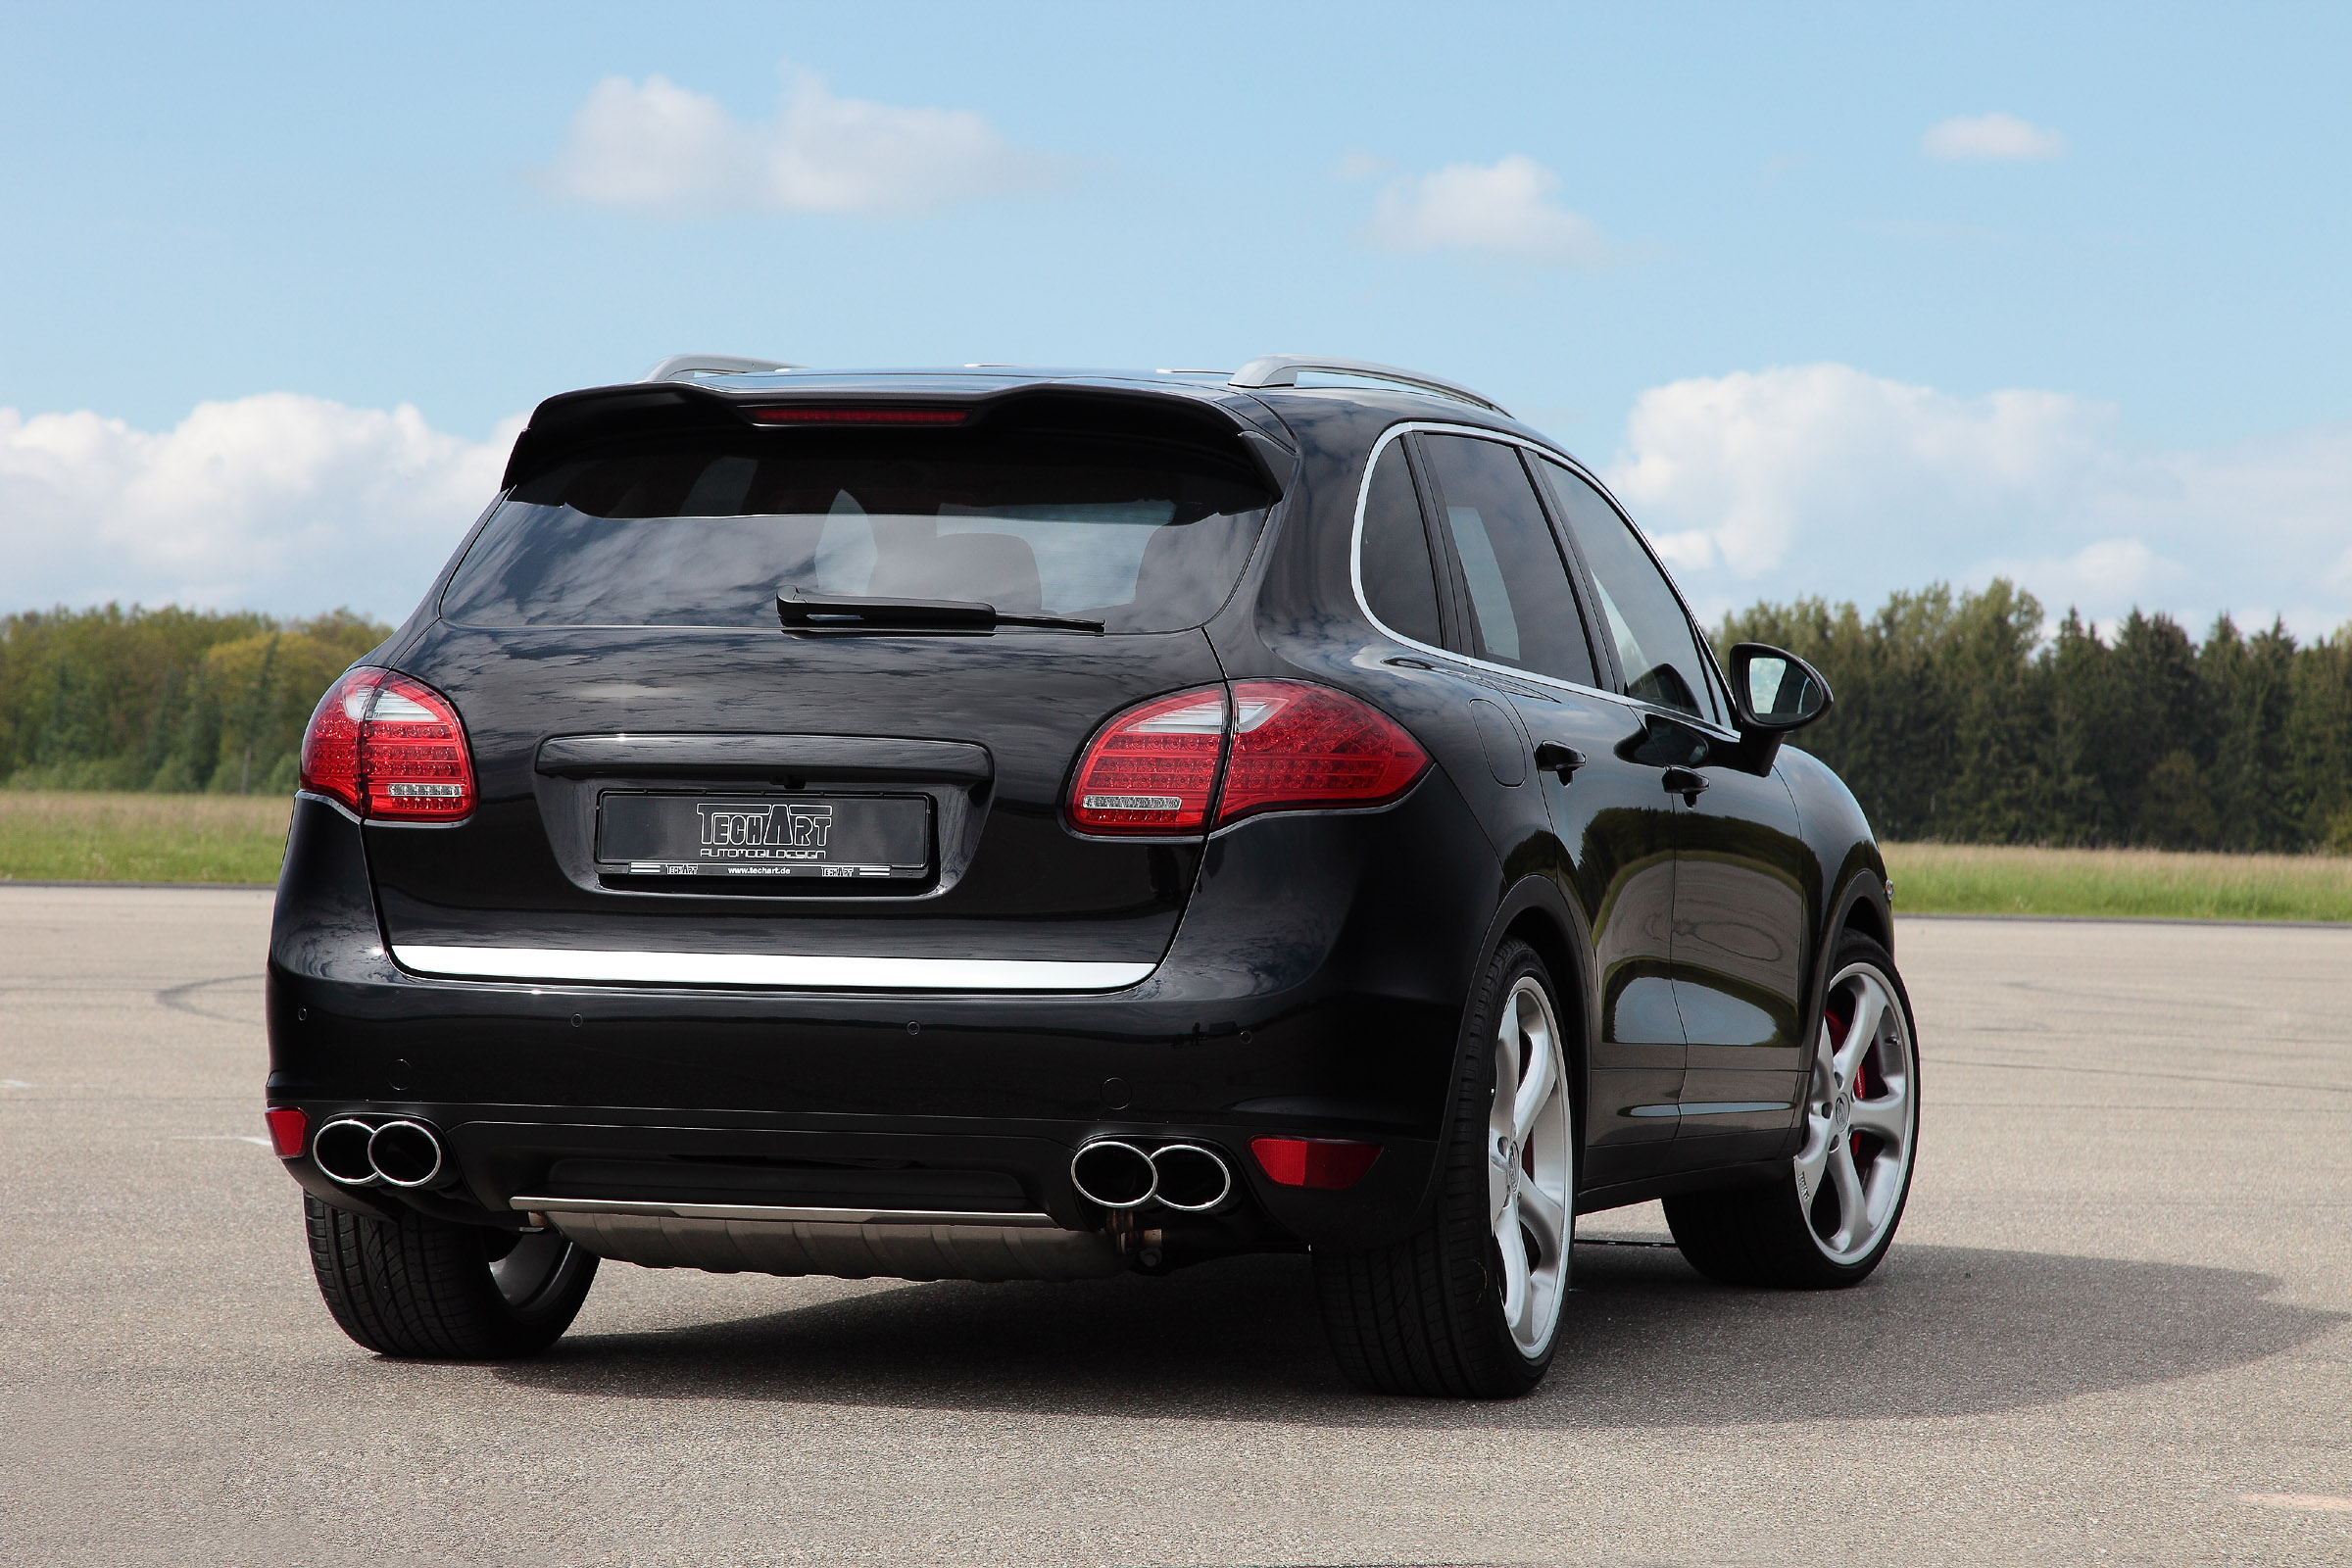 2011 porsche cayenne exclusively restyled by techart. Black Bedroom Furniture Sets. Home Design Ideas